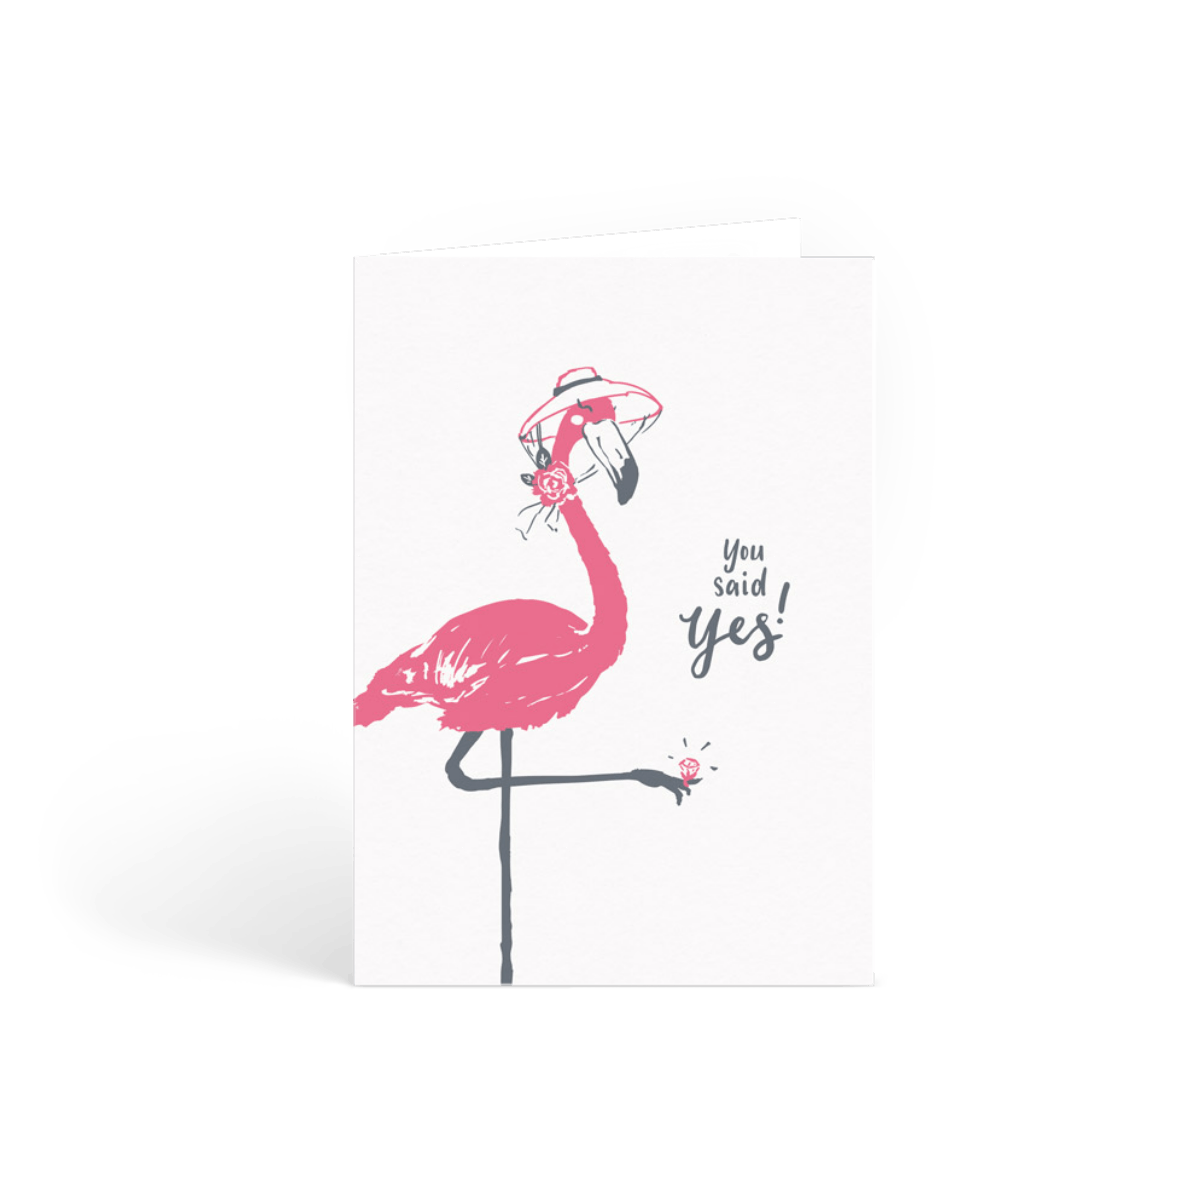 Https%3a%2f%2fwww.papier.com%2fproduct image%2f41503%2f2%2fyou said yes flamingo 10582 front 1542387868.png?ixlib=rb 1.1